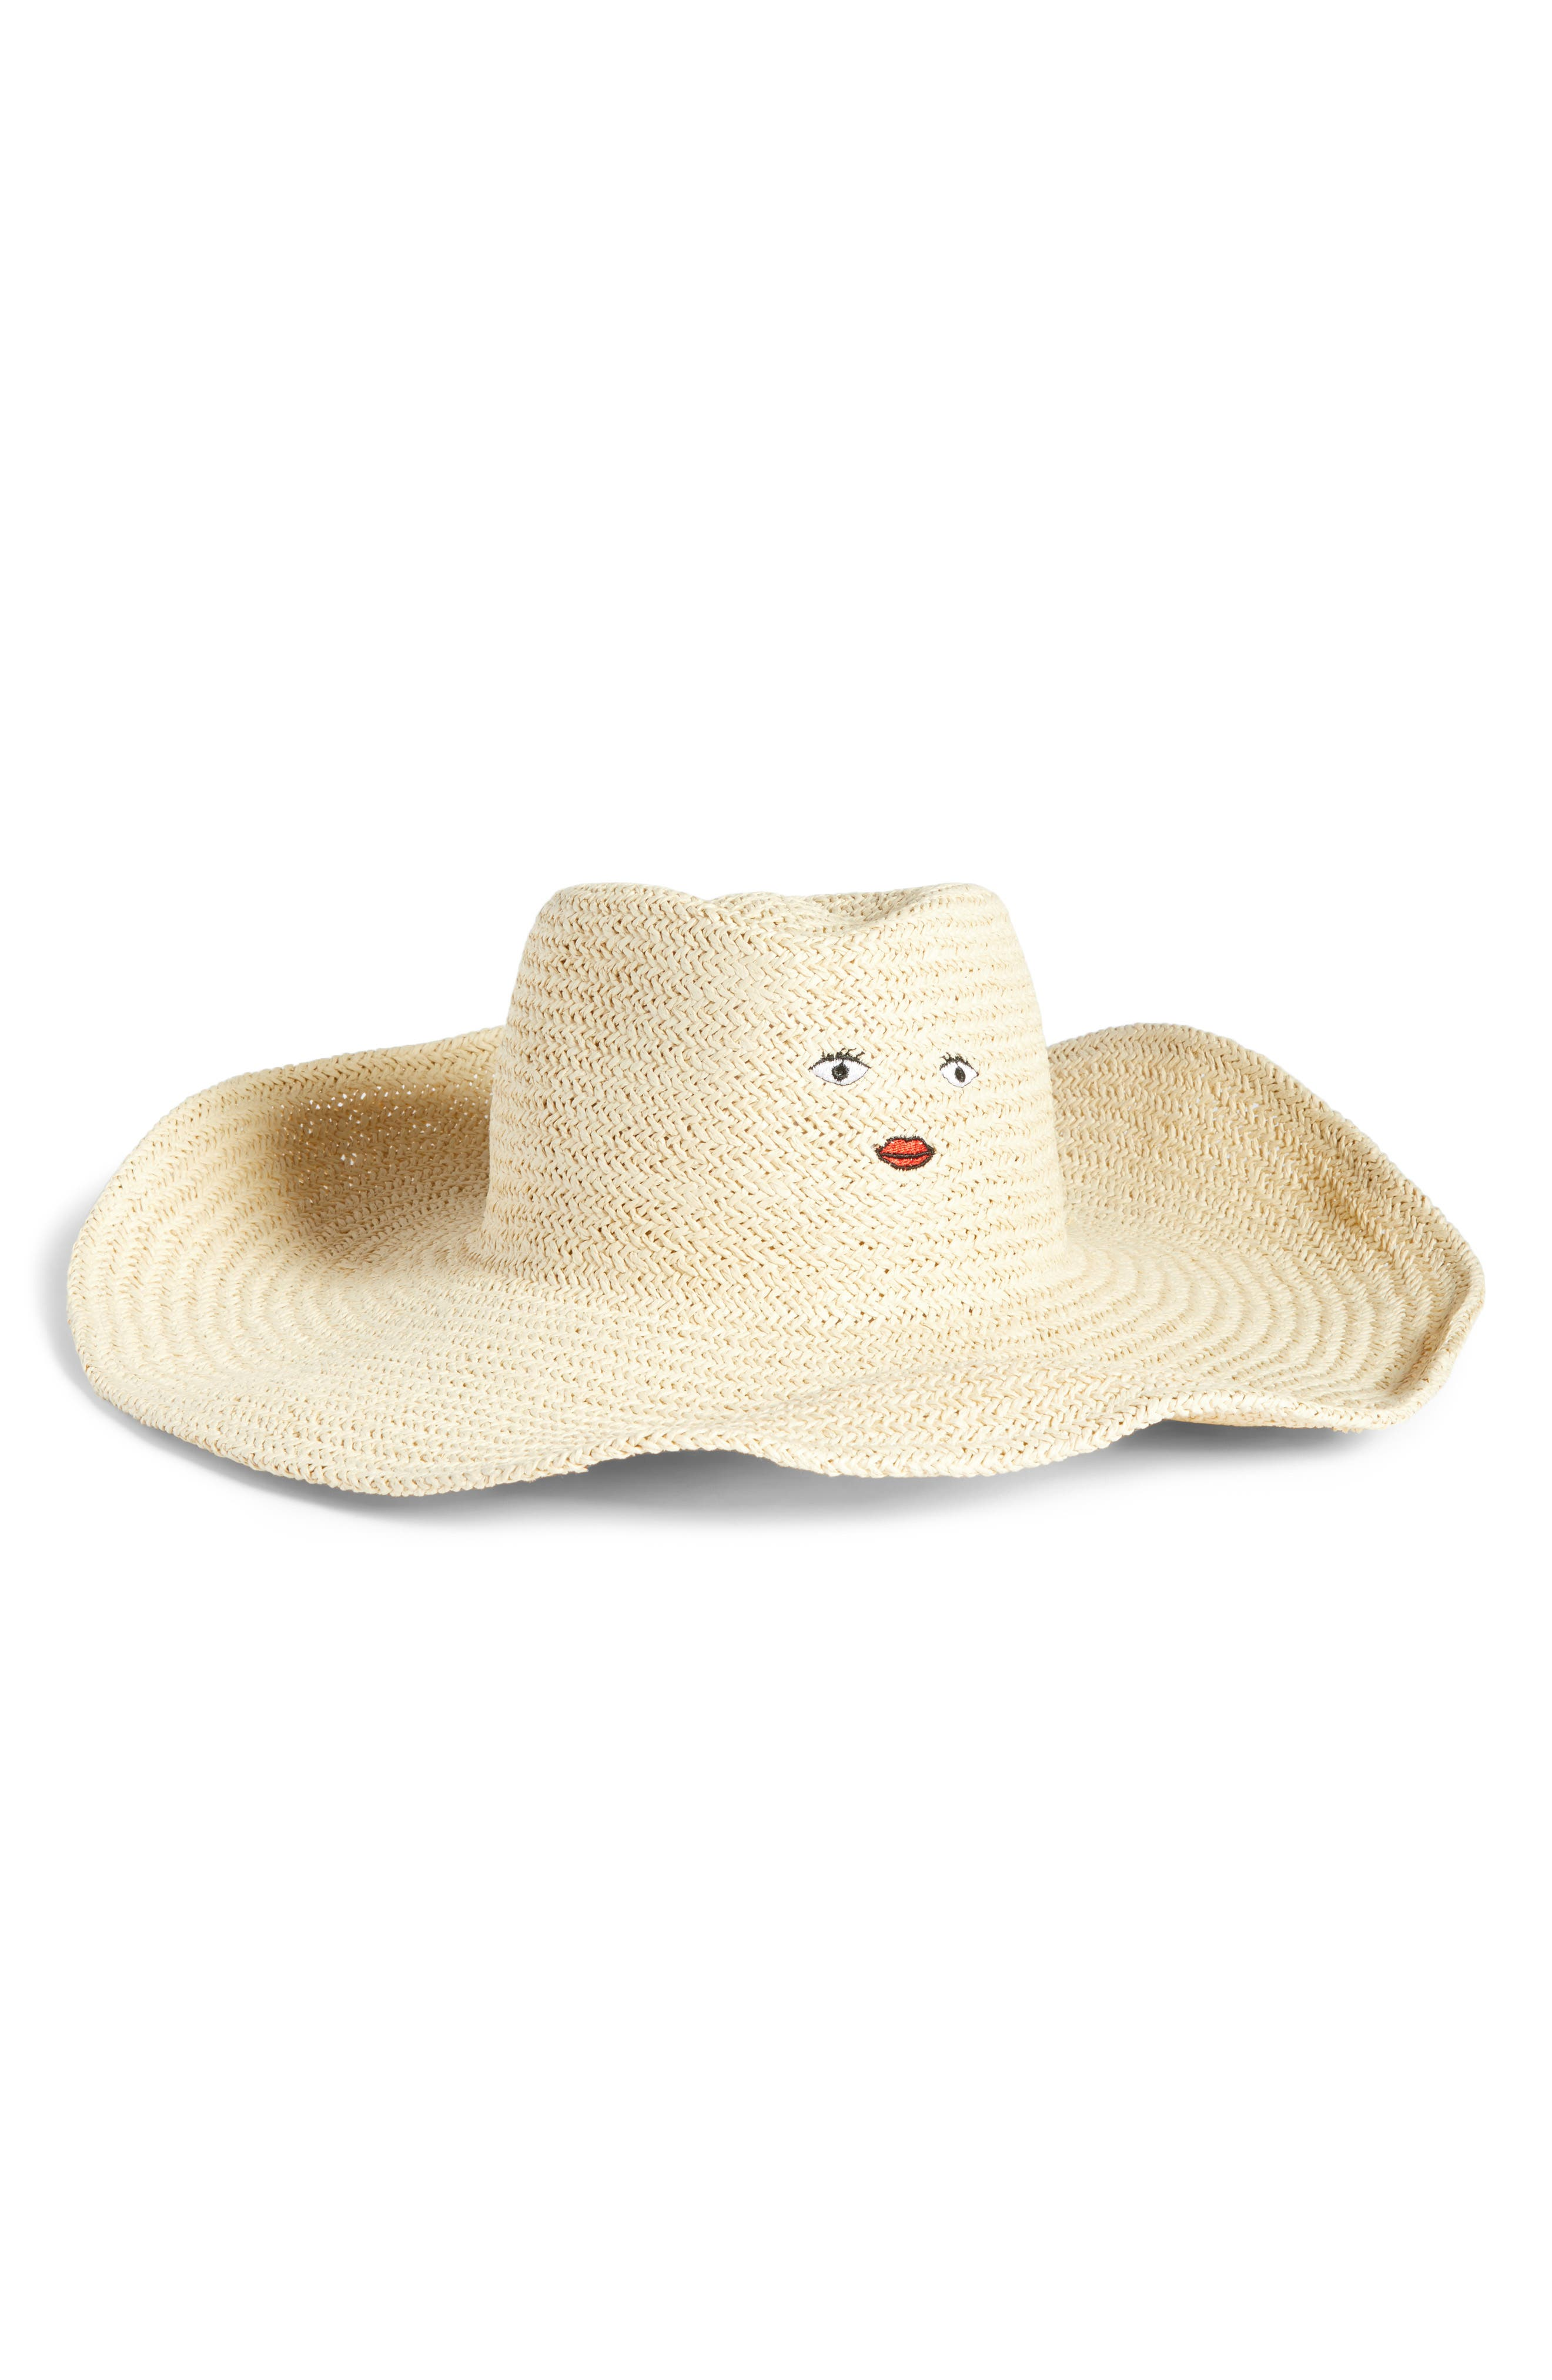 Large Fantasy Embroidered Straw Fedora,                             Main thumbnail 1, color,                             250